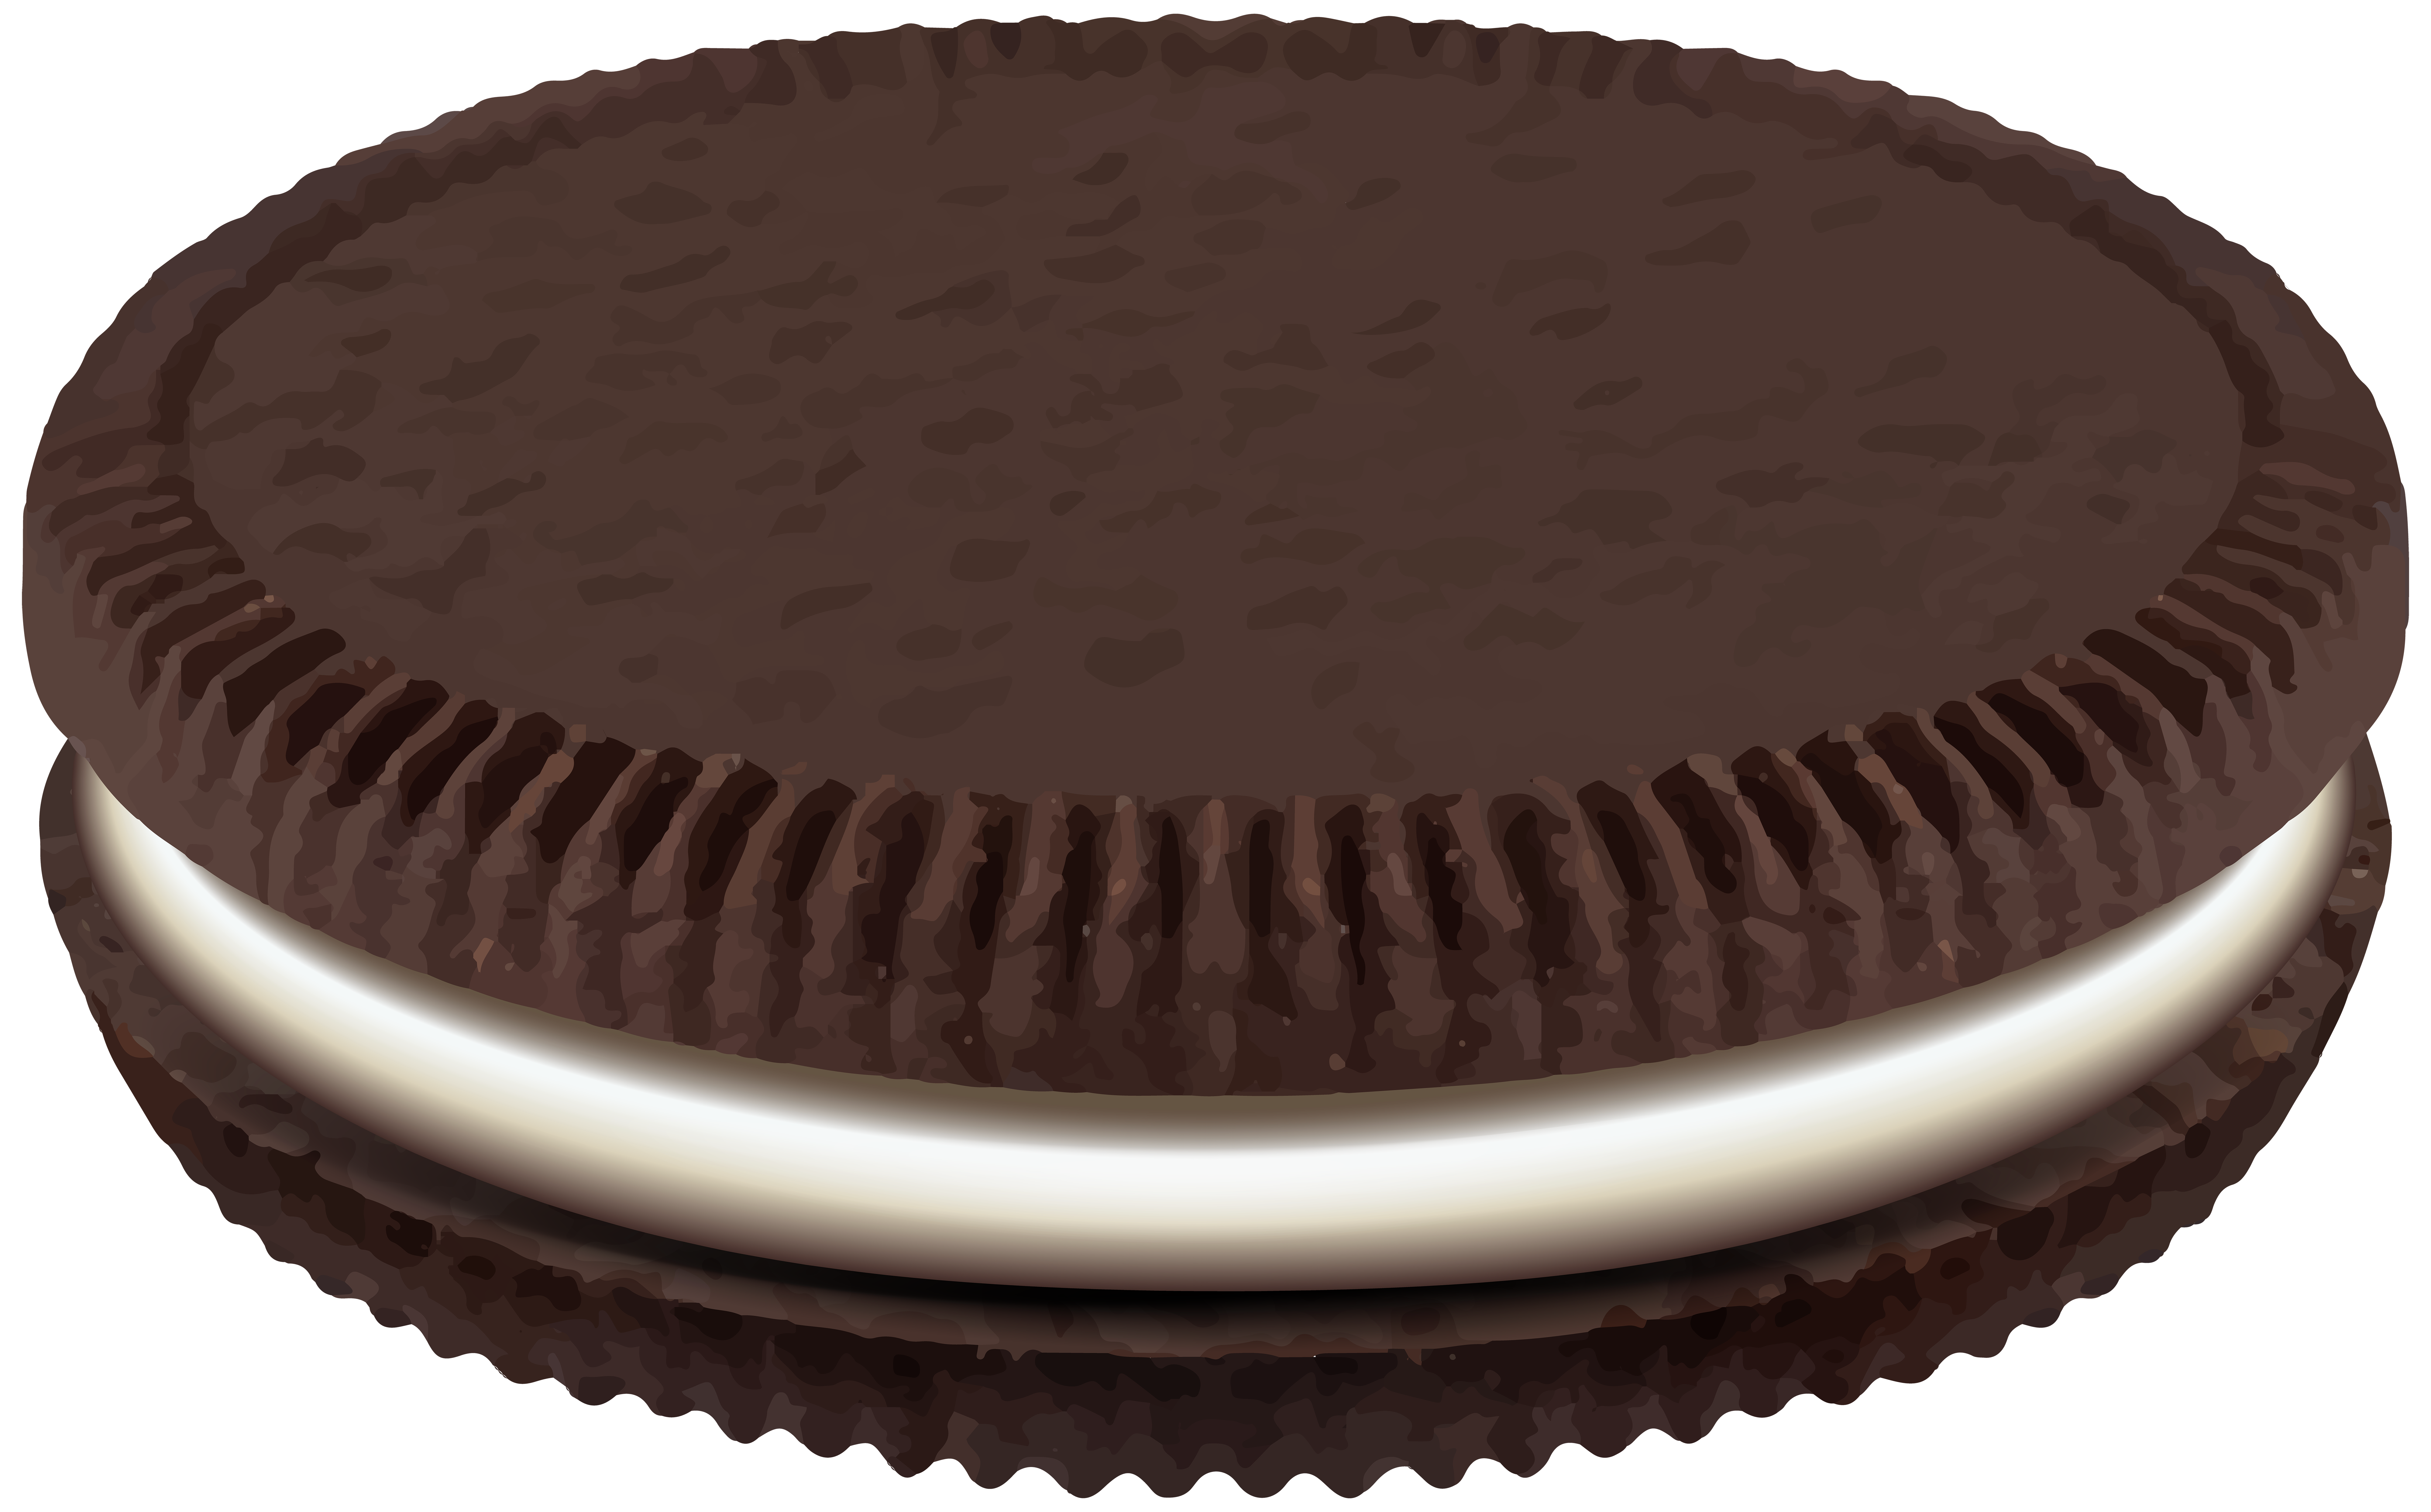 Desserts clipart snack. Chocolate sandwich biscuit png